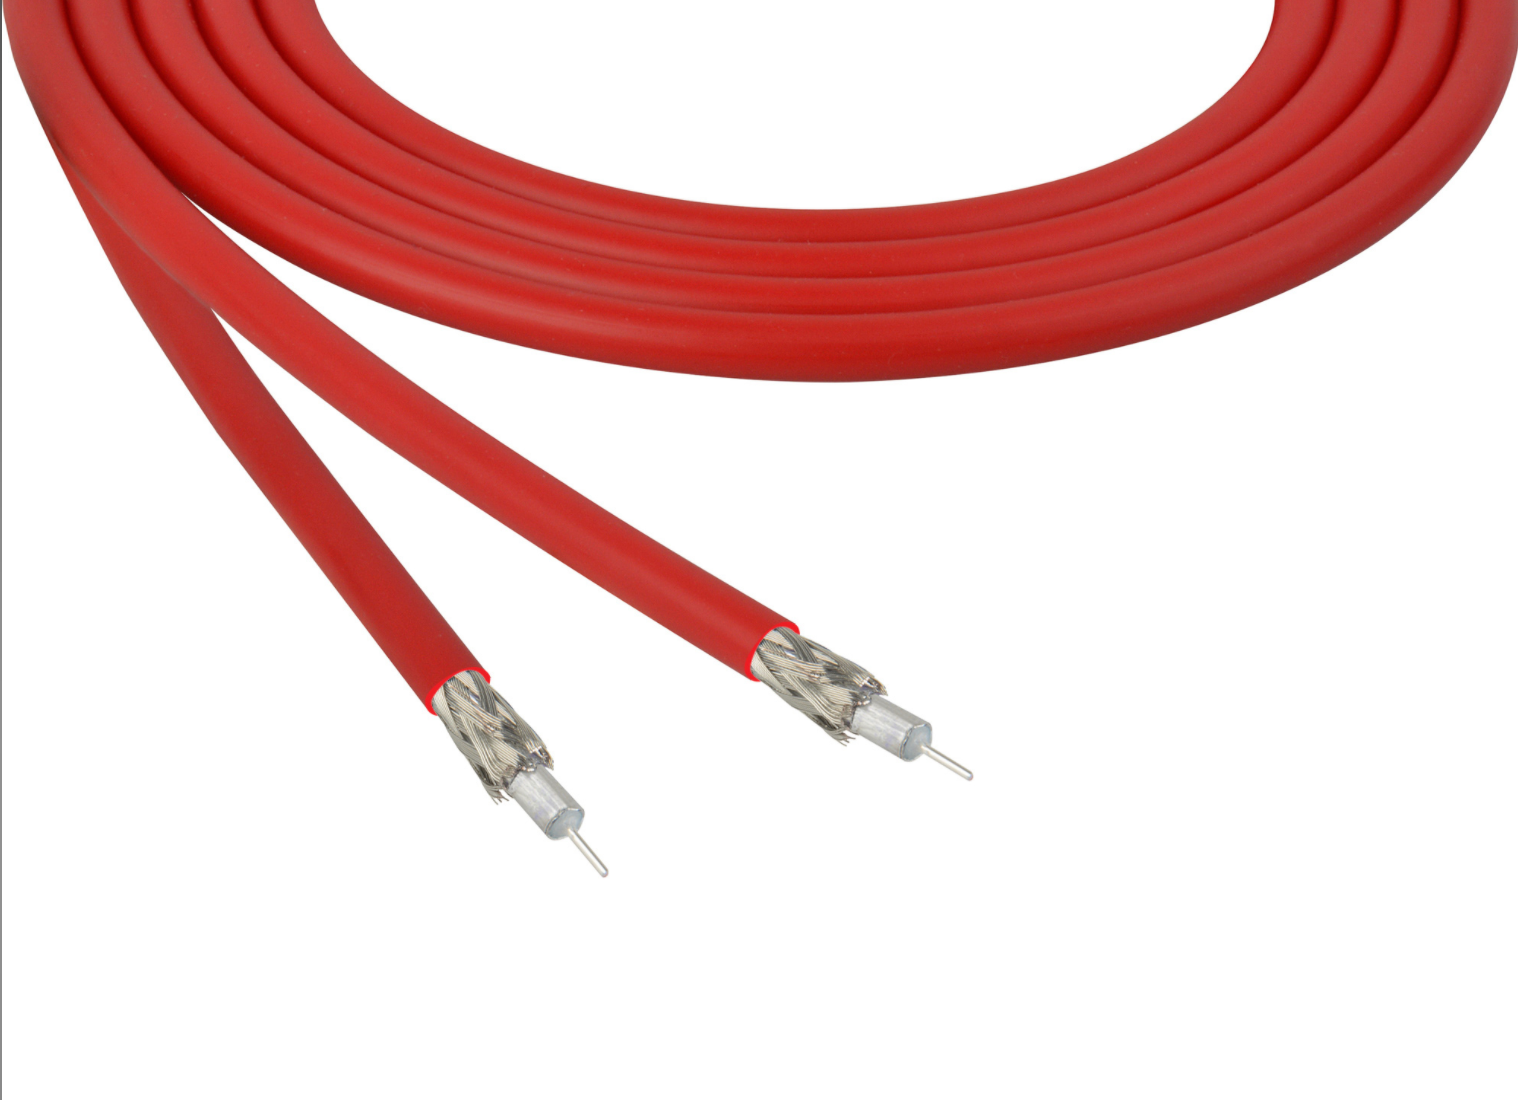 Belden 4855R 12G-SDI 4K UHD Red Coax Cable - 23 AWG - 1000 Foot